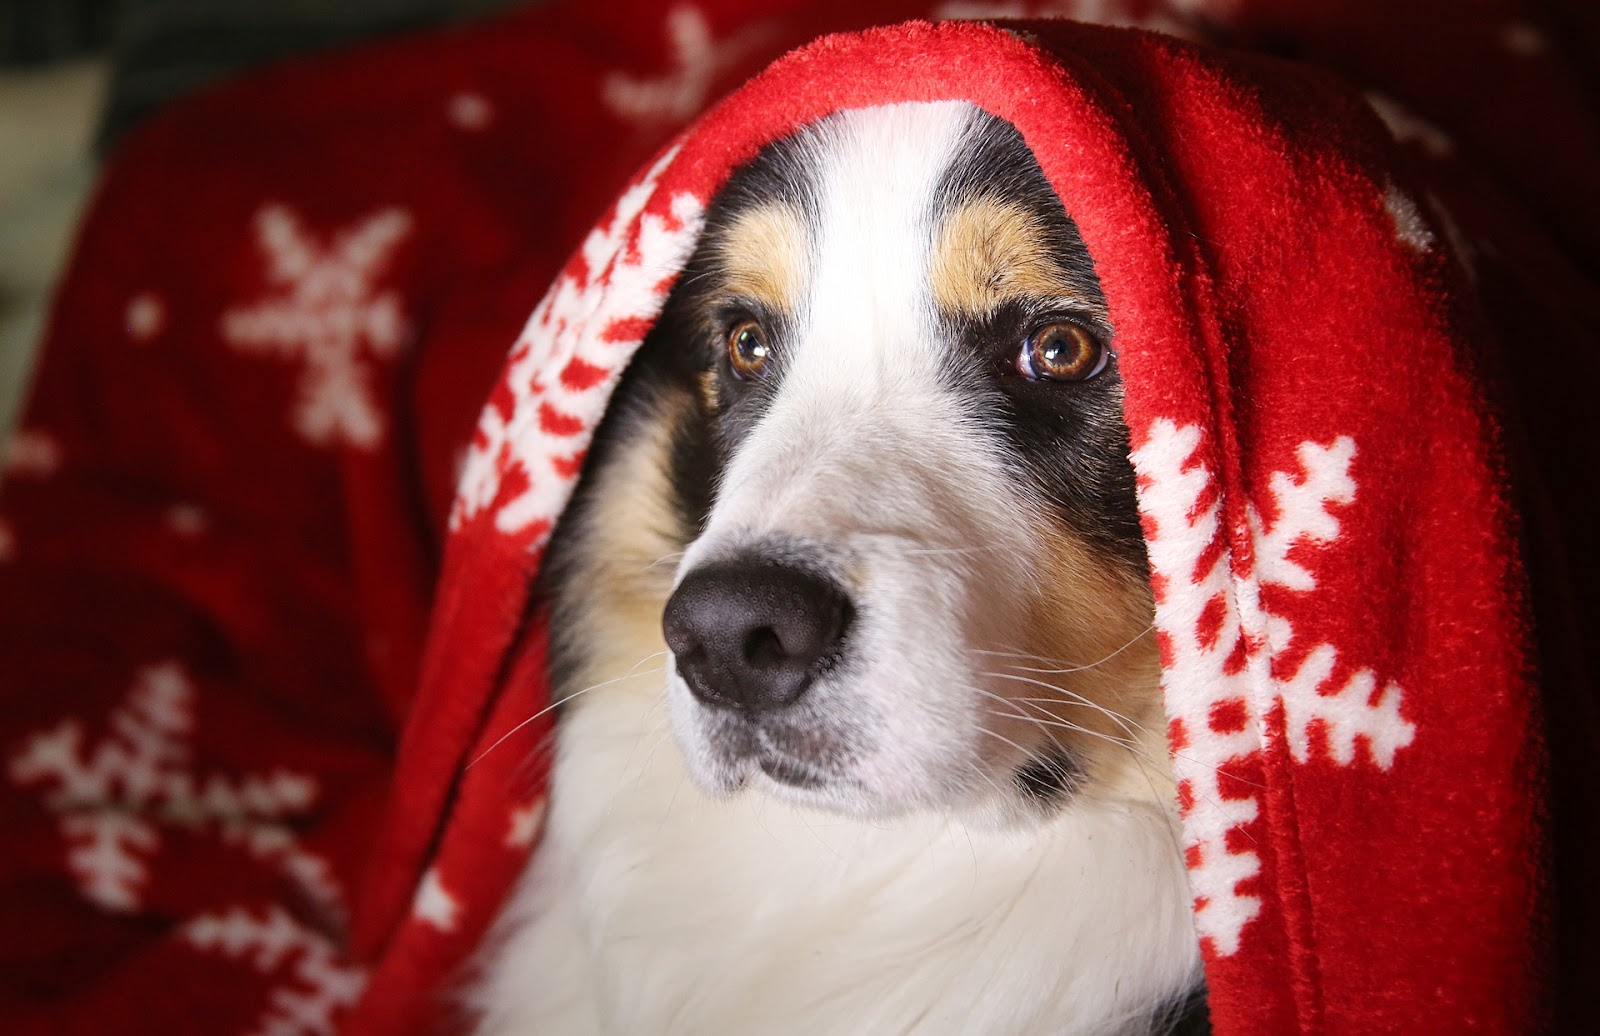 brown, white, and black dog with a red blanket draped over his head